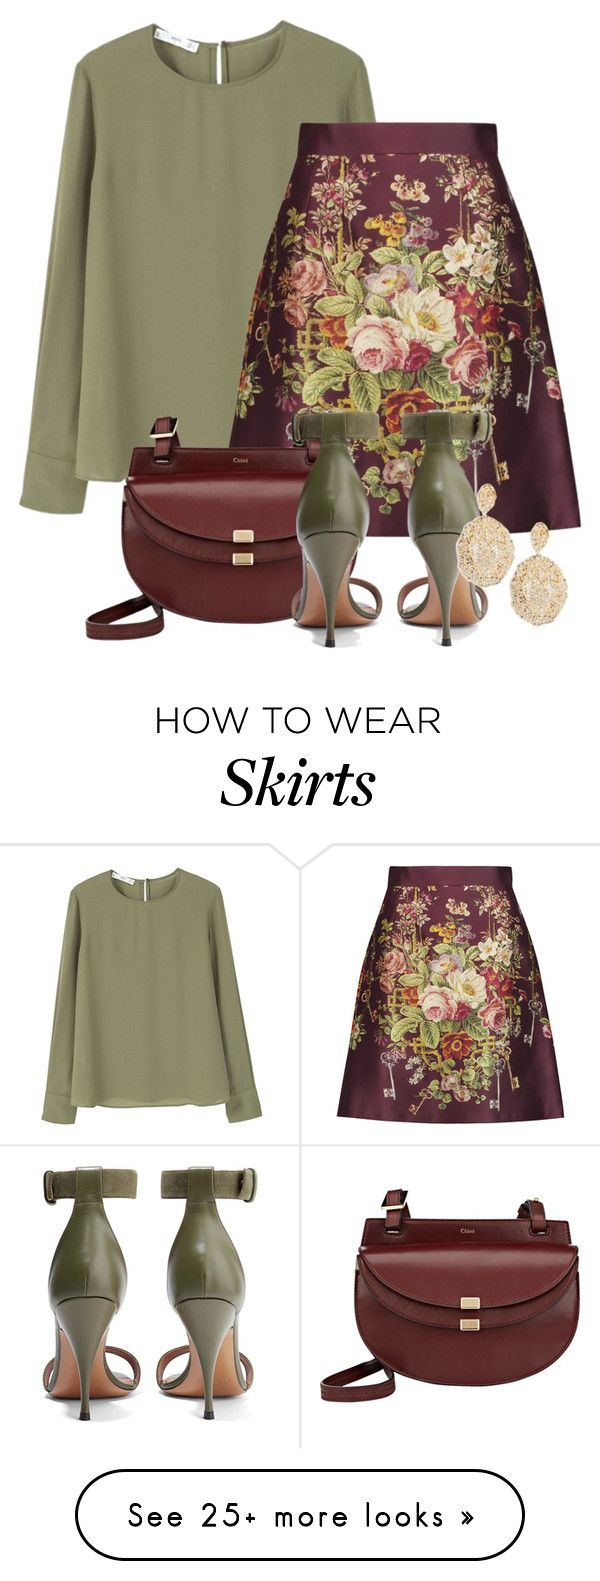 """Friday Work Outfit"" by christined1960 on Polyvore featuring MANGO, Dolce&Gabbana, Chloé, Givenchy and Aurélie Bidermann"